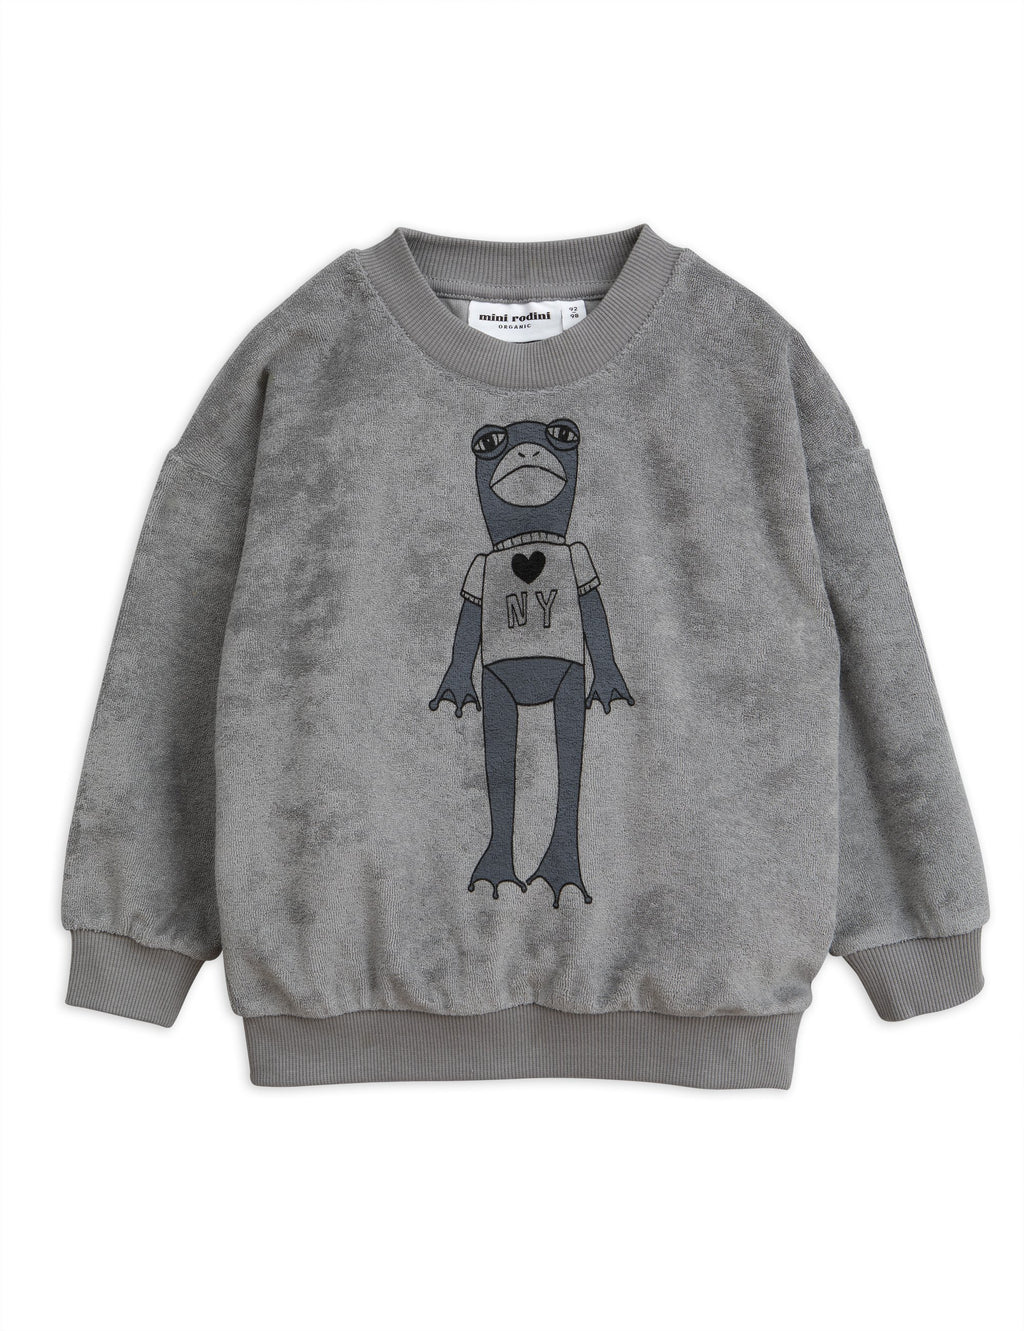 Frog terry sweatshirt - grey Mini Rodini